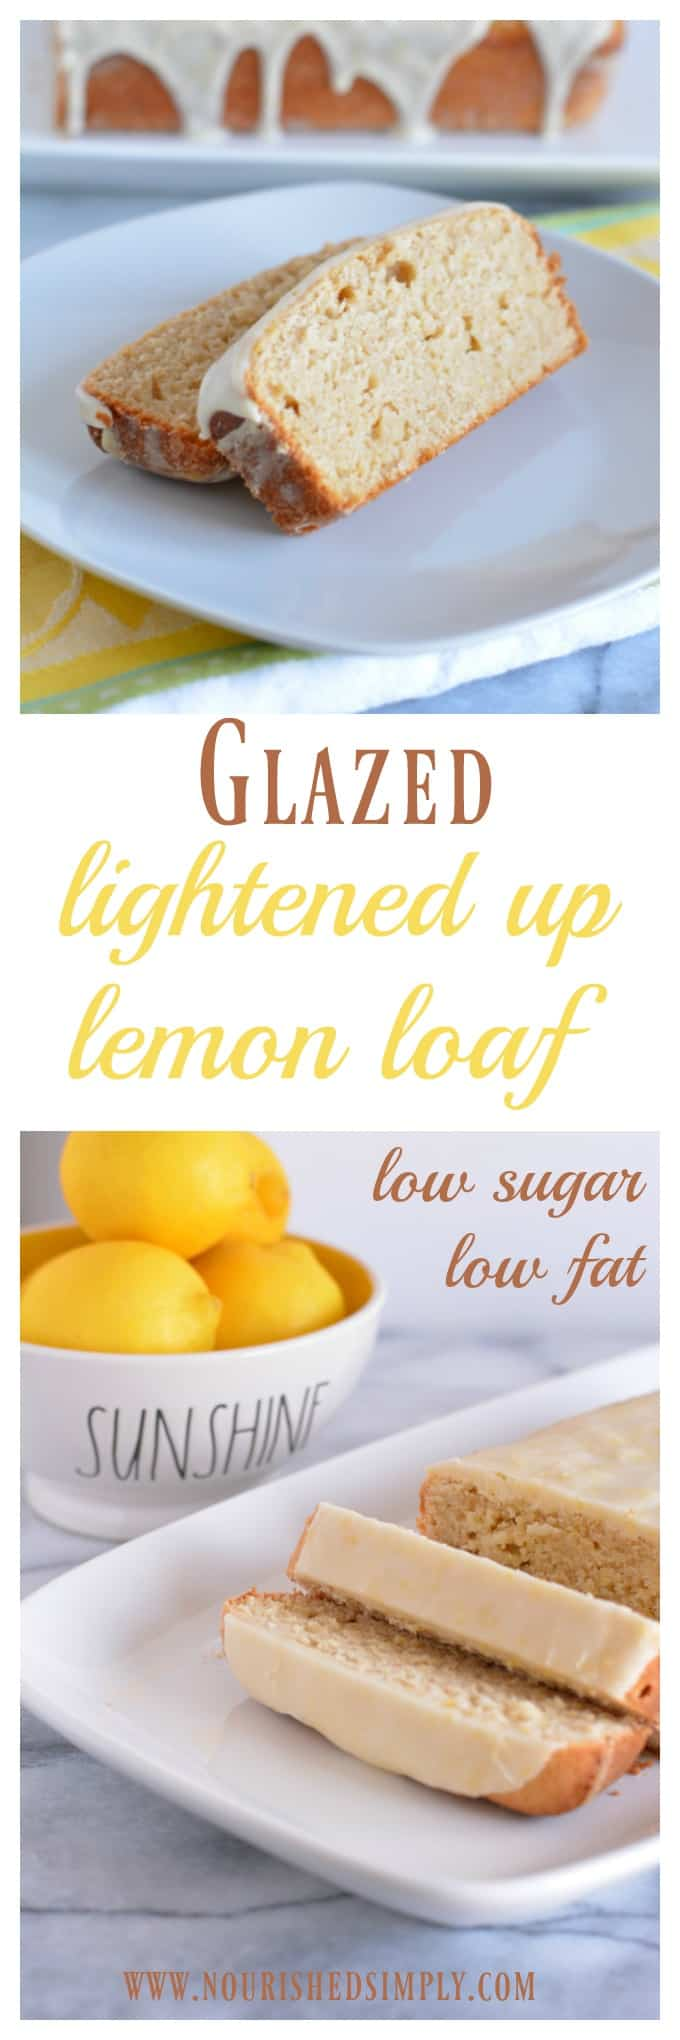 #AD A healthier version of the classic glazed lemon loaf. This recipe is lower in fat and cholesterol. This low sugar glazed lemon loaf contains less than 2 grams of sugar. #lowsugar #dessert  #thereciperedux @swerve